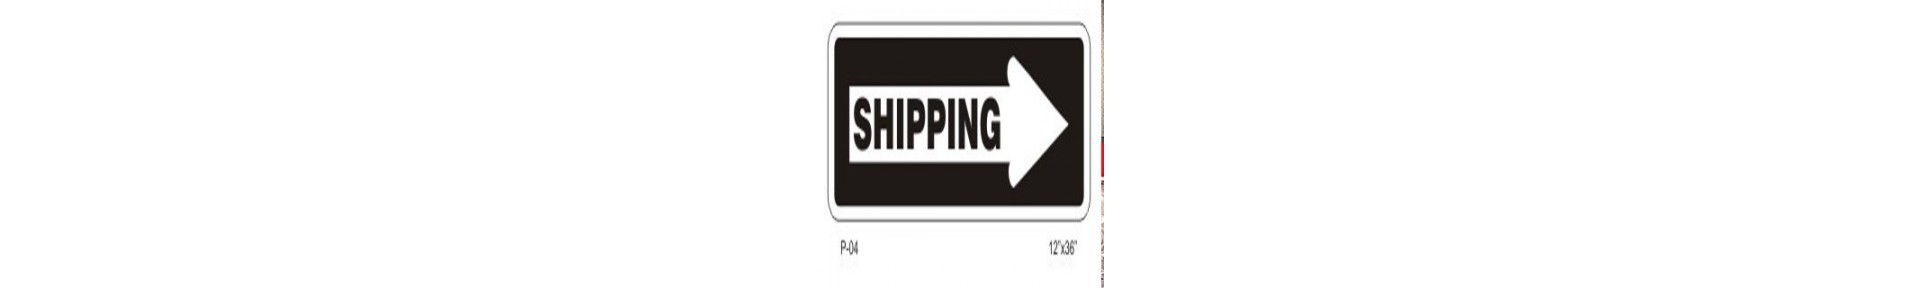 Trucks, Shipping &amp, Receiving Signs &mdash